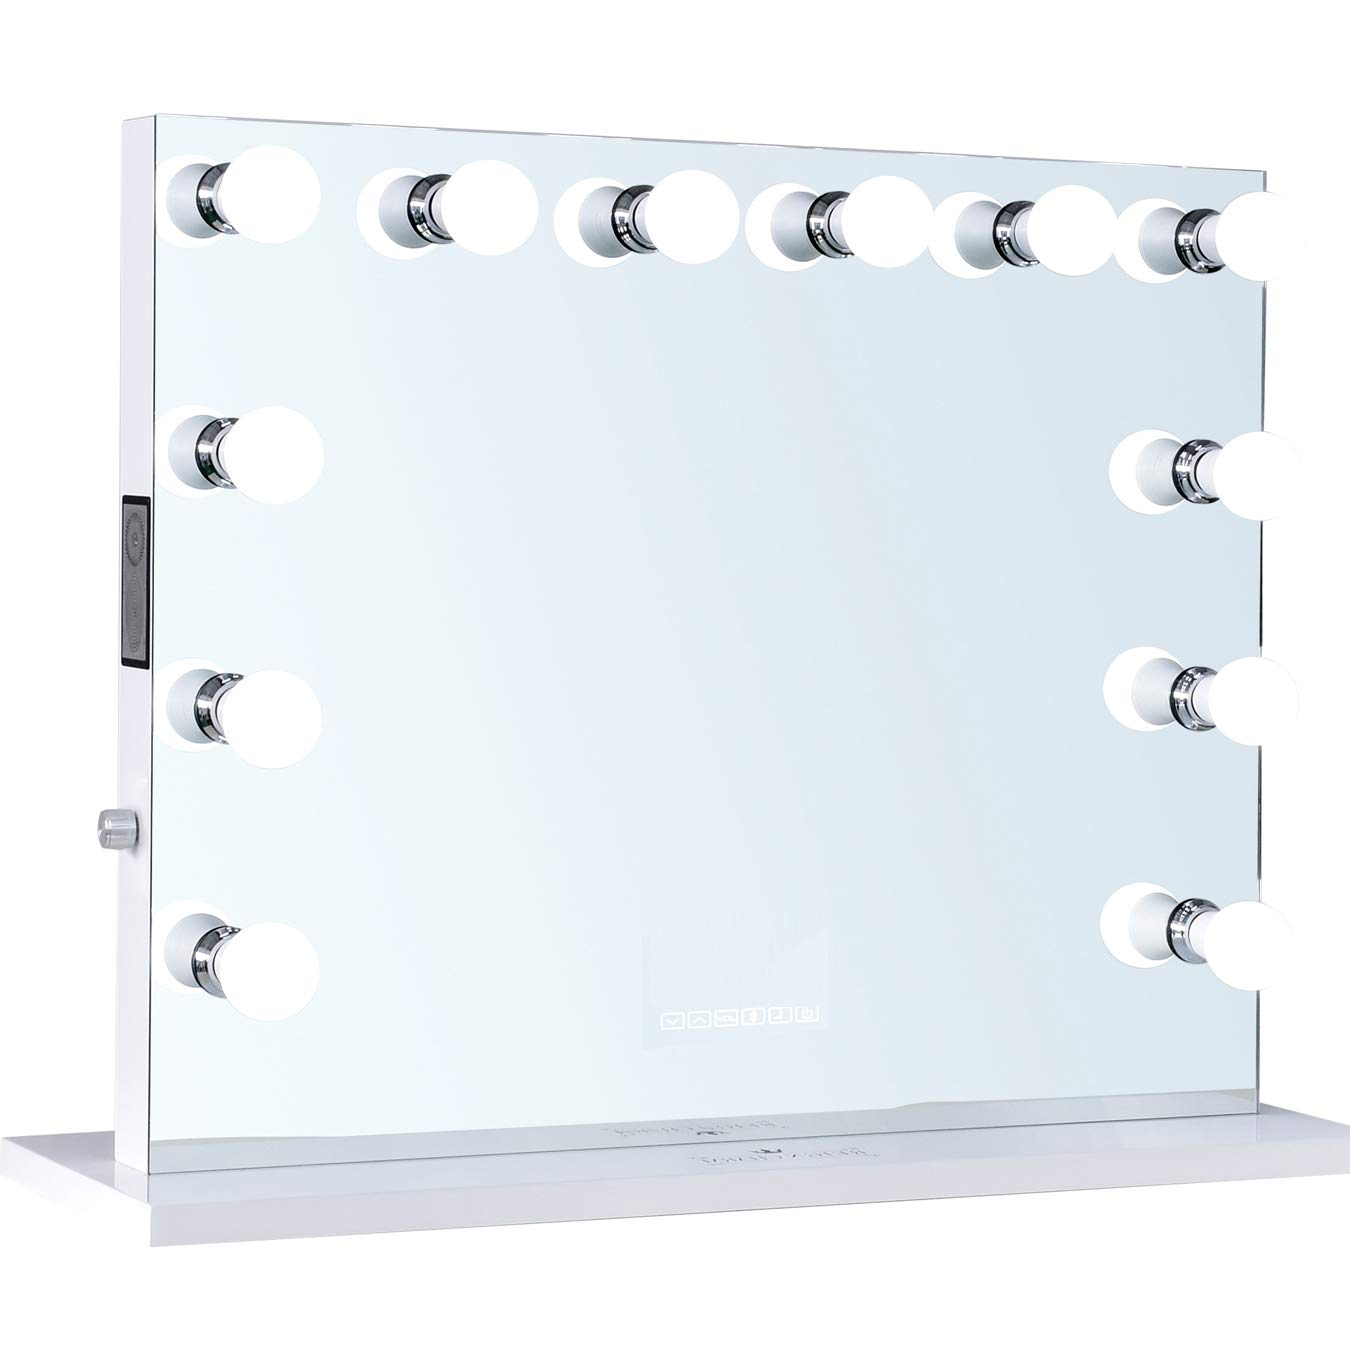 ReignCharm Hollywood Vanity Mirror Music Box, Bluetooth Speaker, 12 LED Lights, Dual Outlets USB, 32-inches x 27-inches